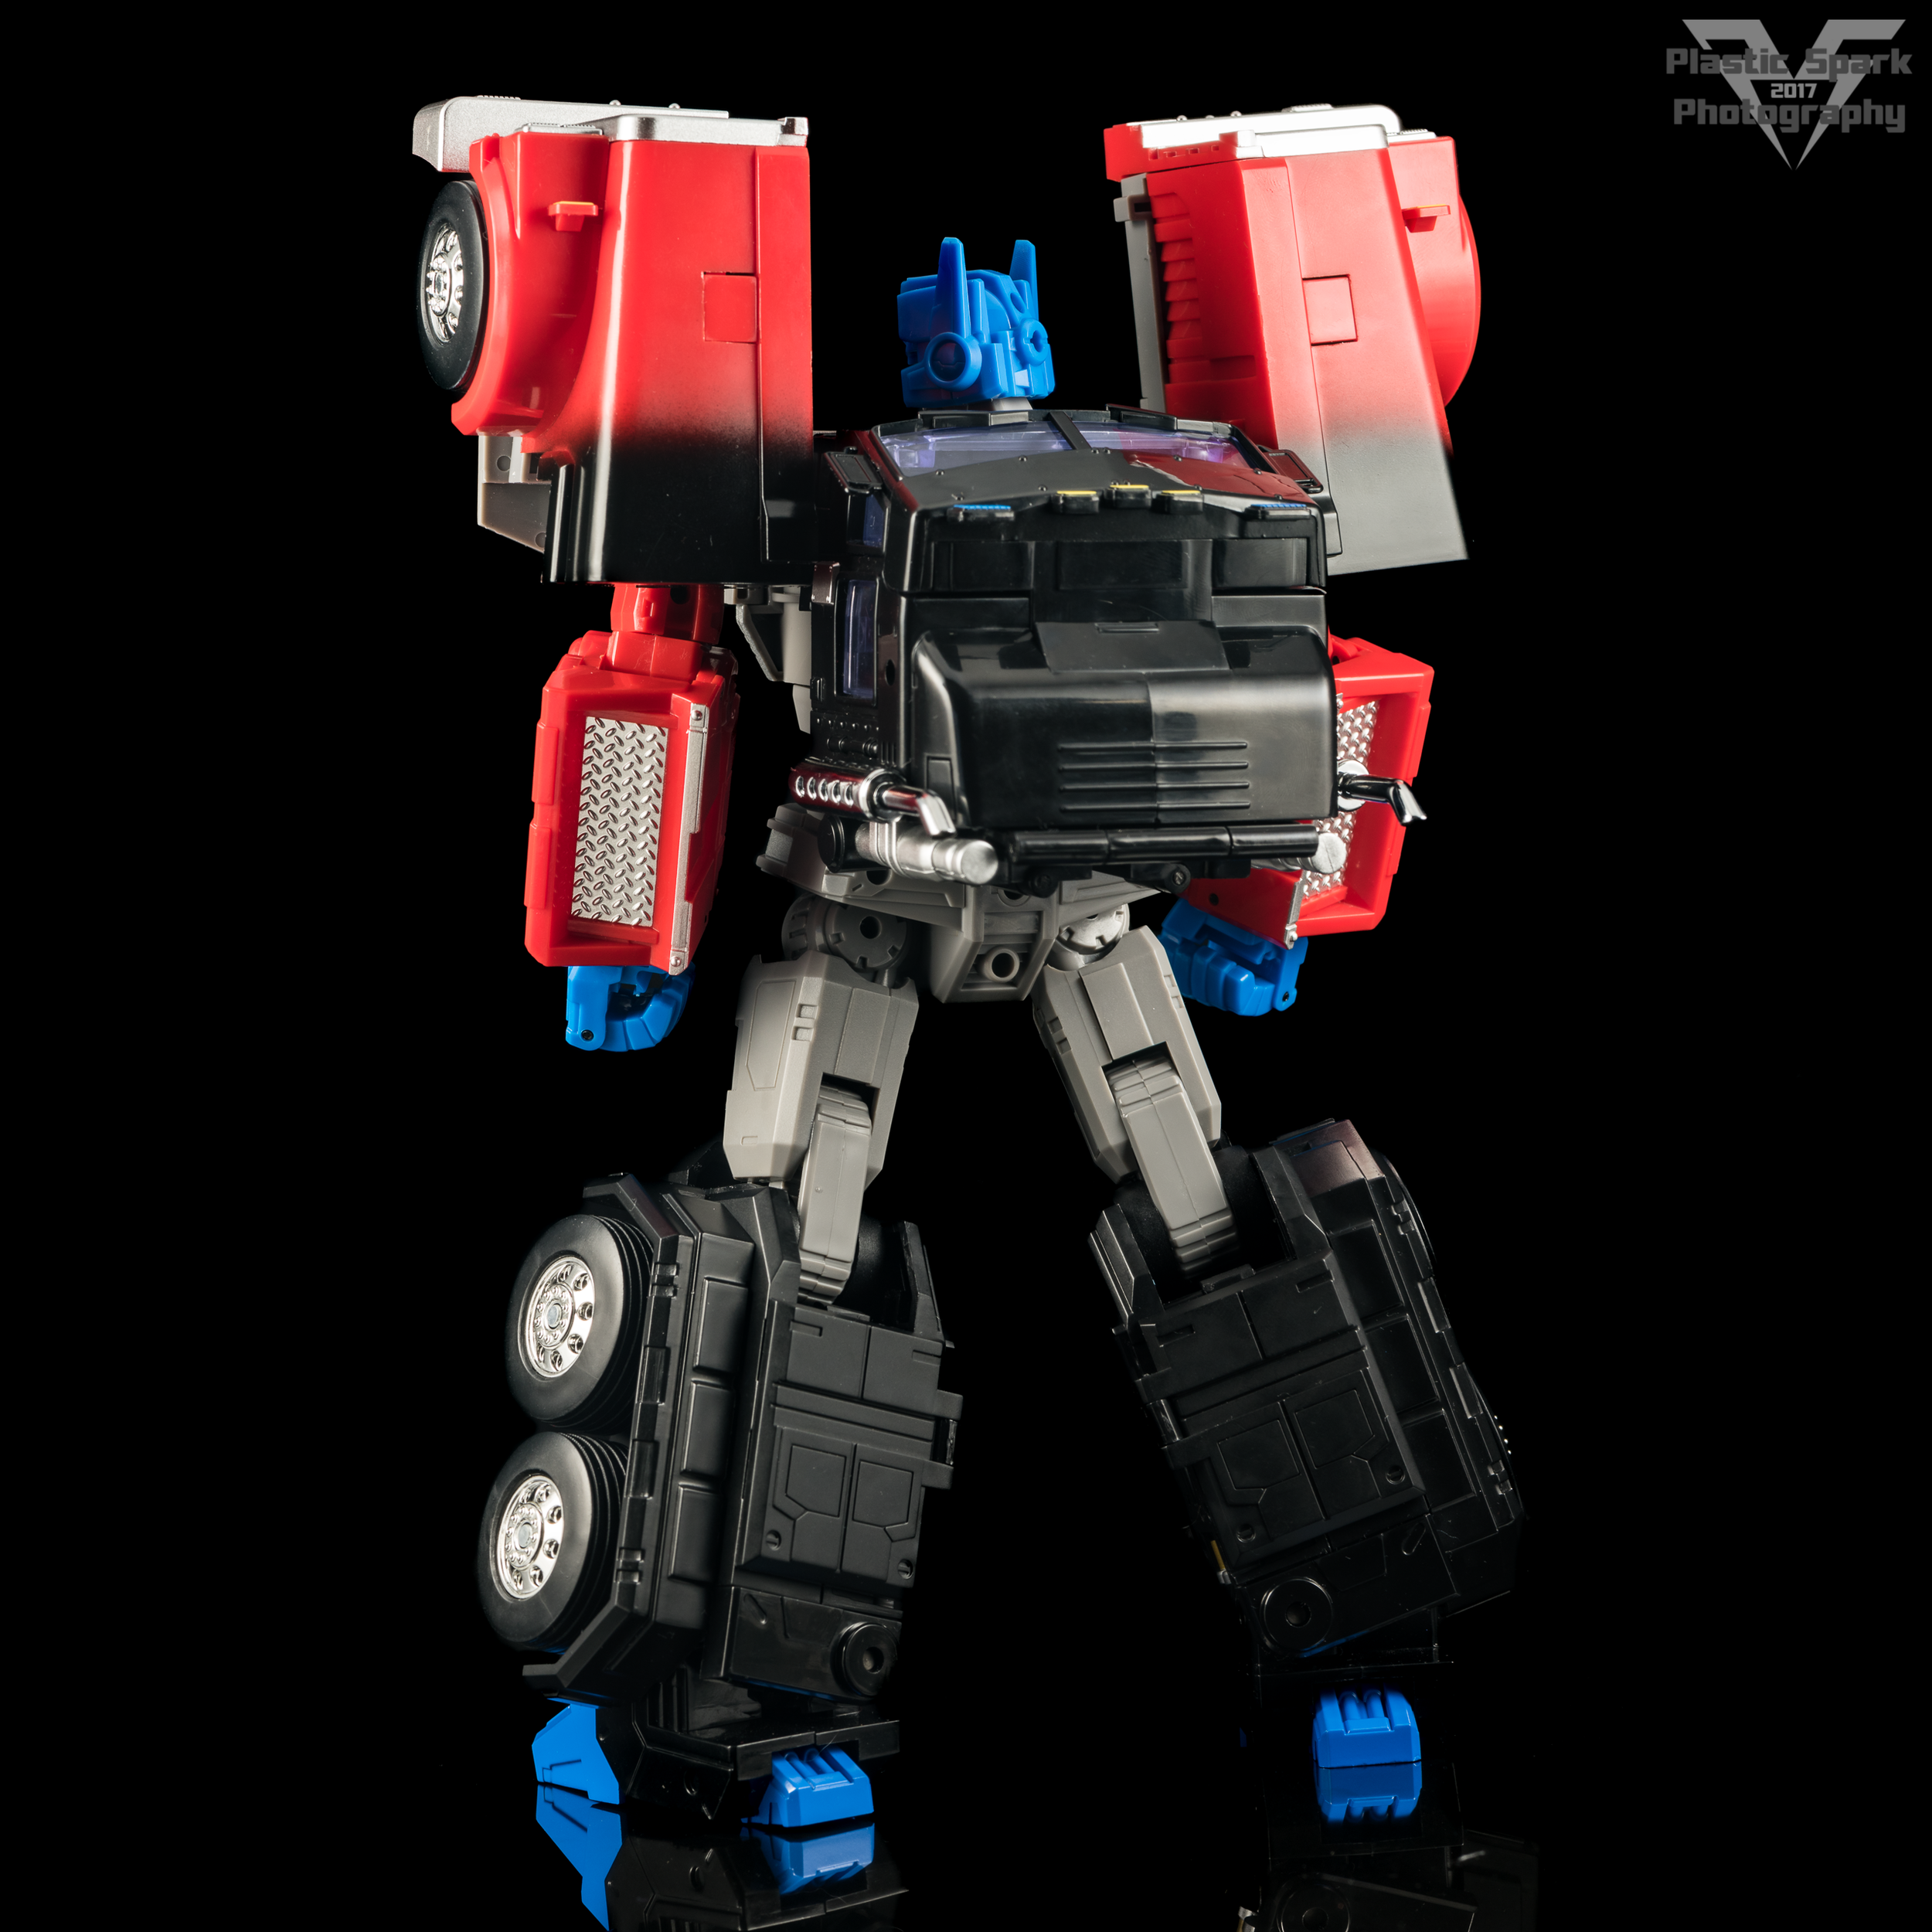 Fans-Hobby-MB-04-Gunfighter-II-(31-of-61).png